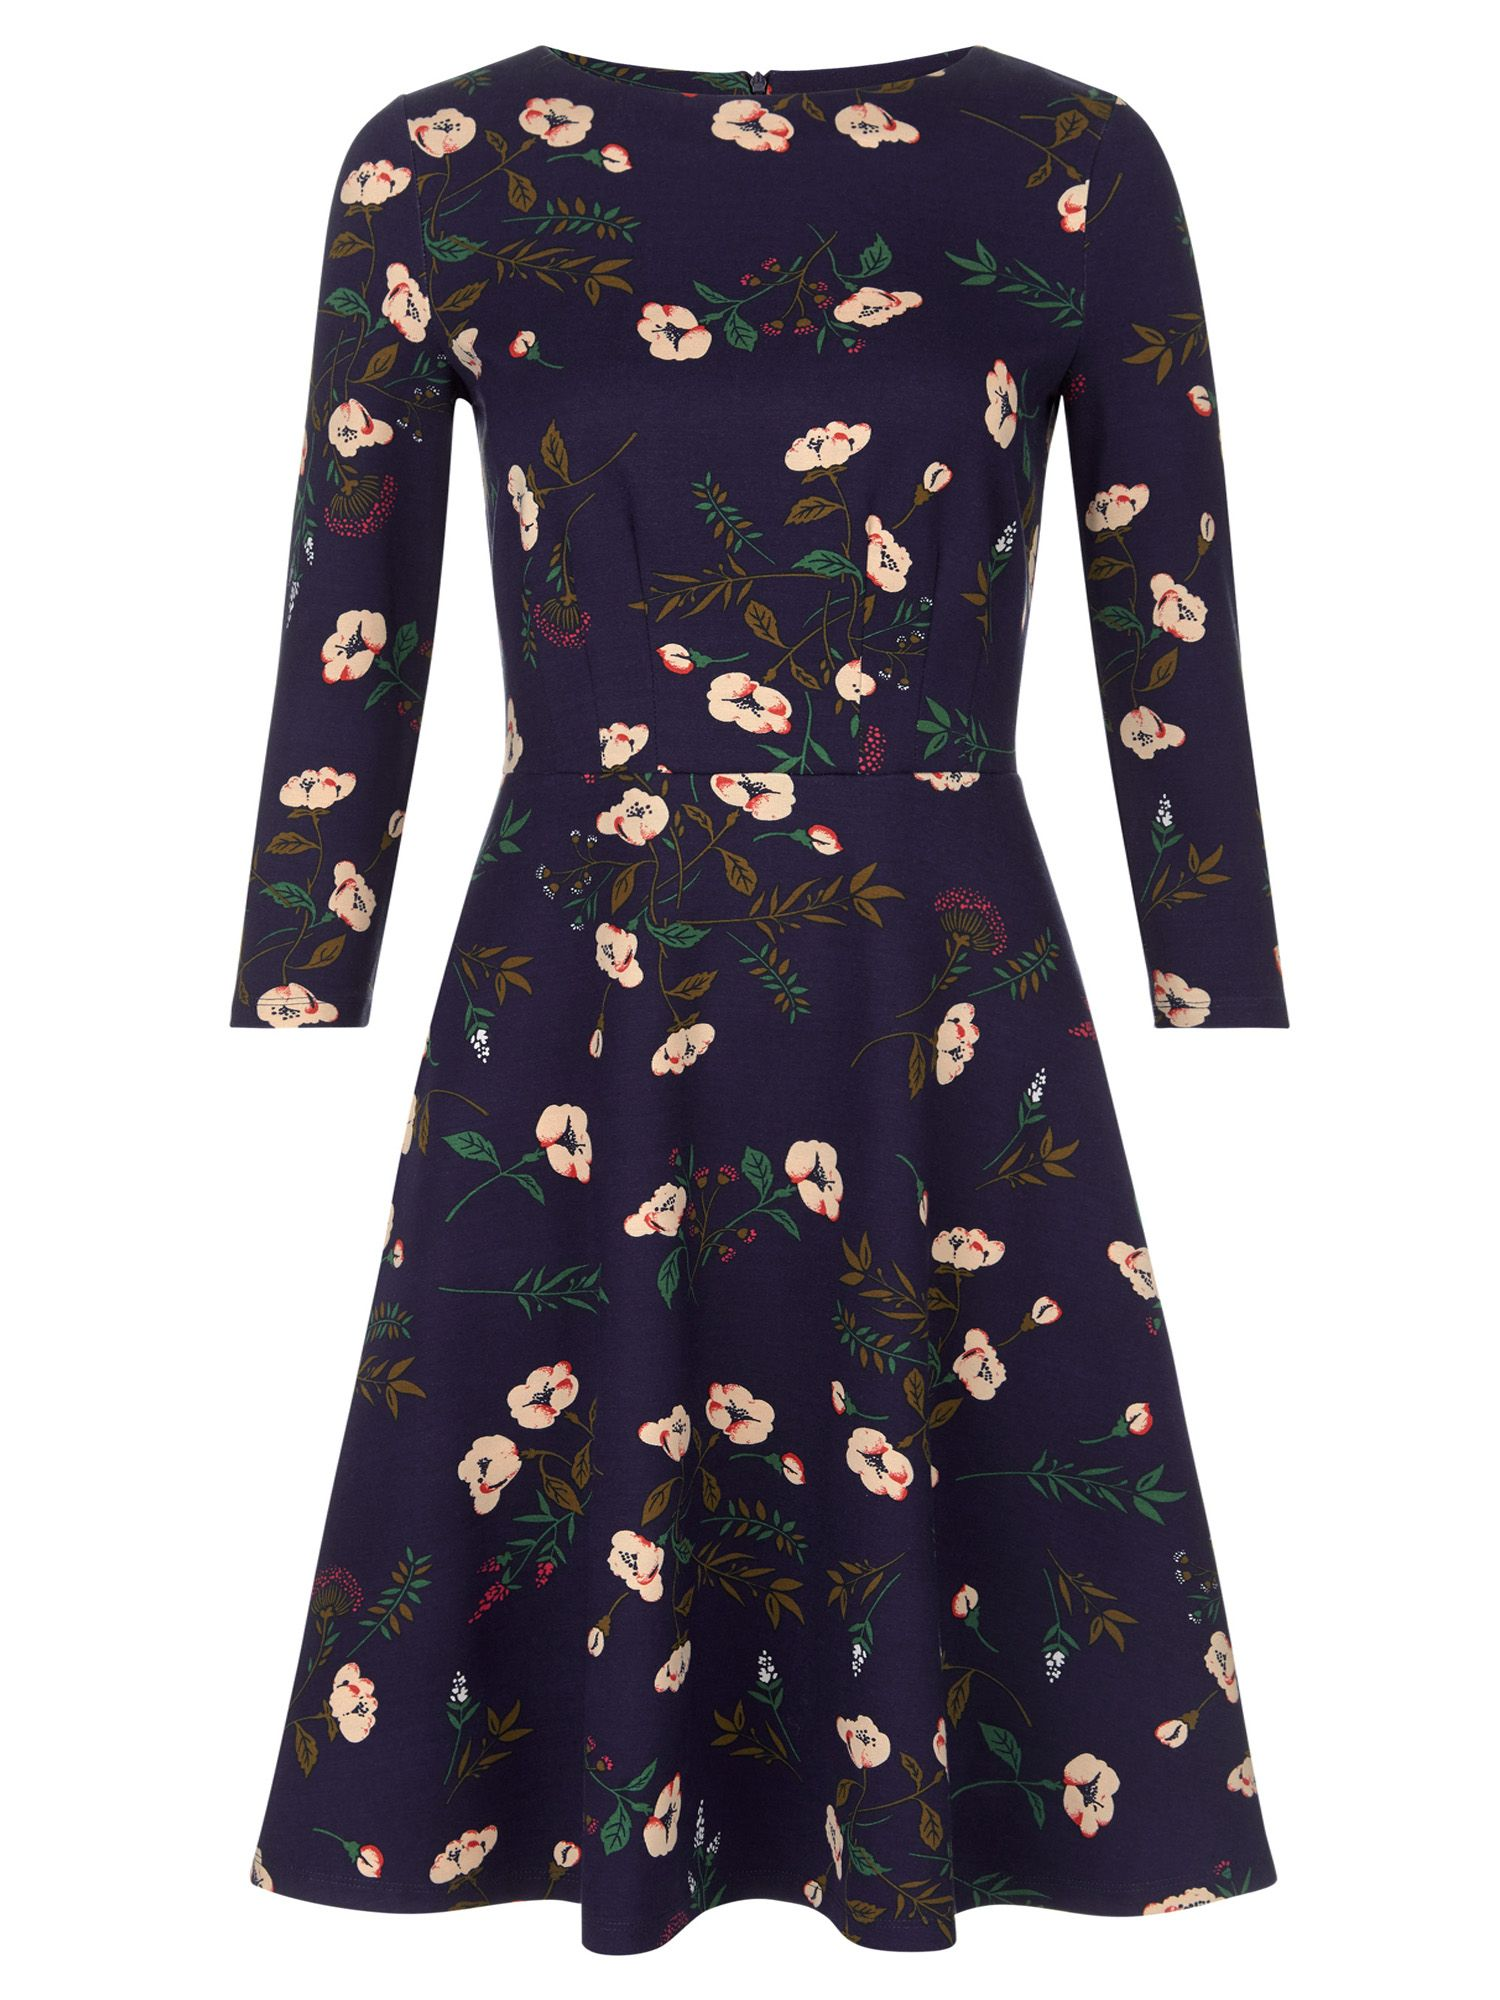 Hobbs Telula Dress, Multi-Coloured